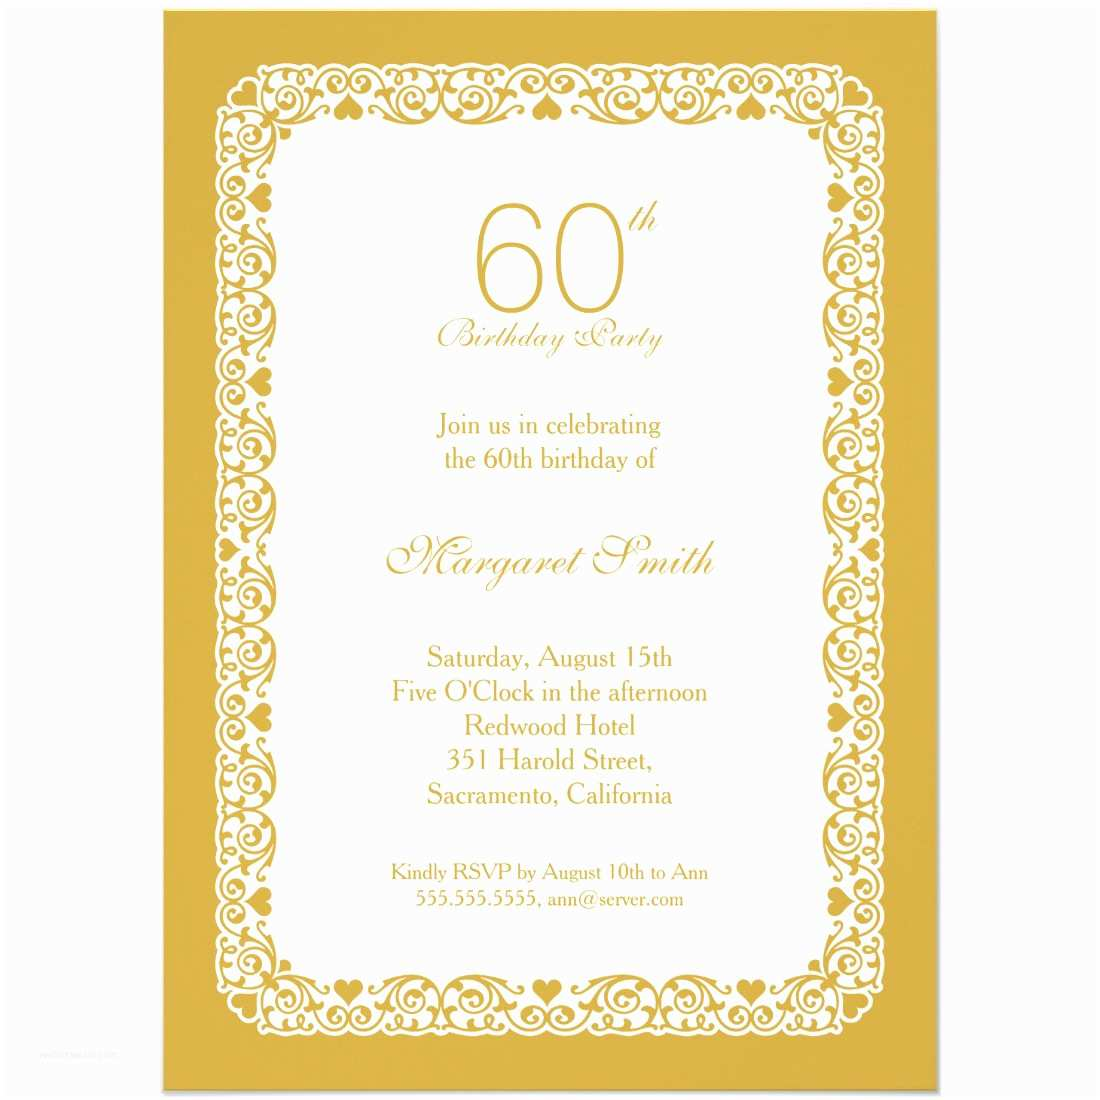 Design Party Invitations 60th Birthday Party Invitations